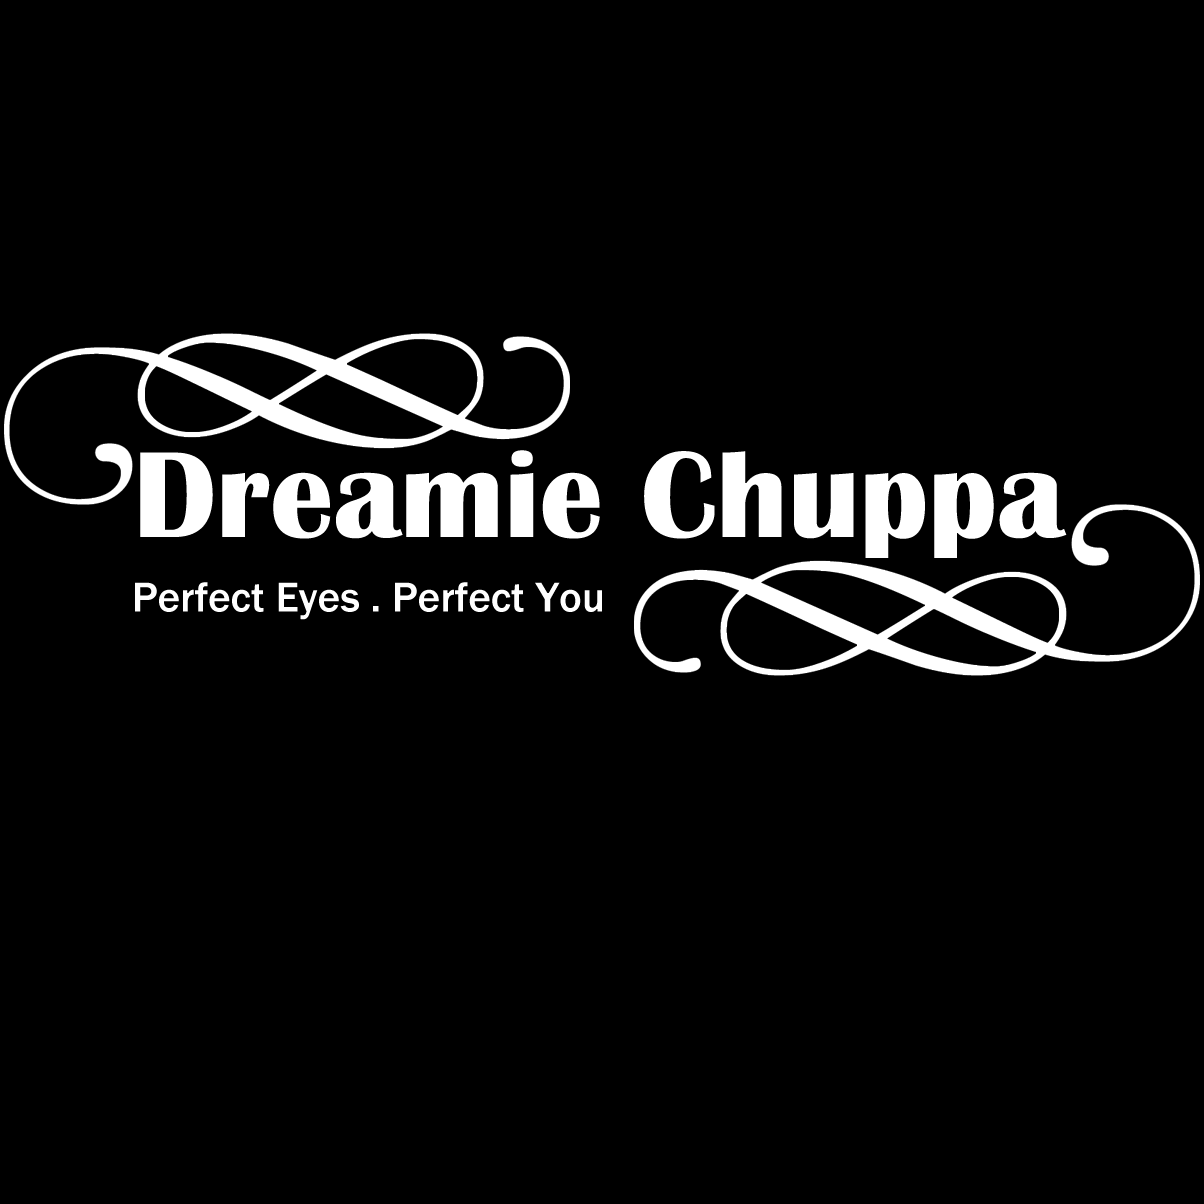 https://www.facebook.com/dreamie.chuppa